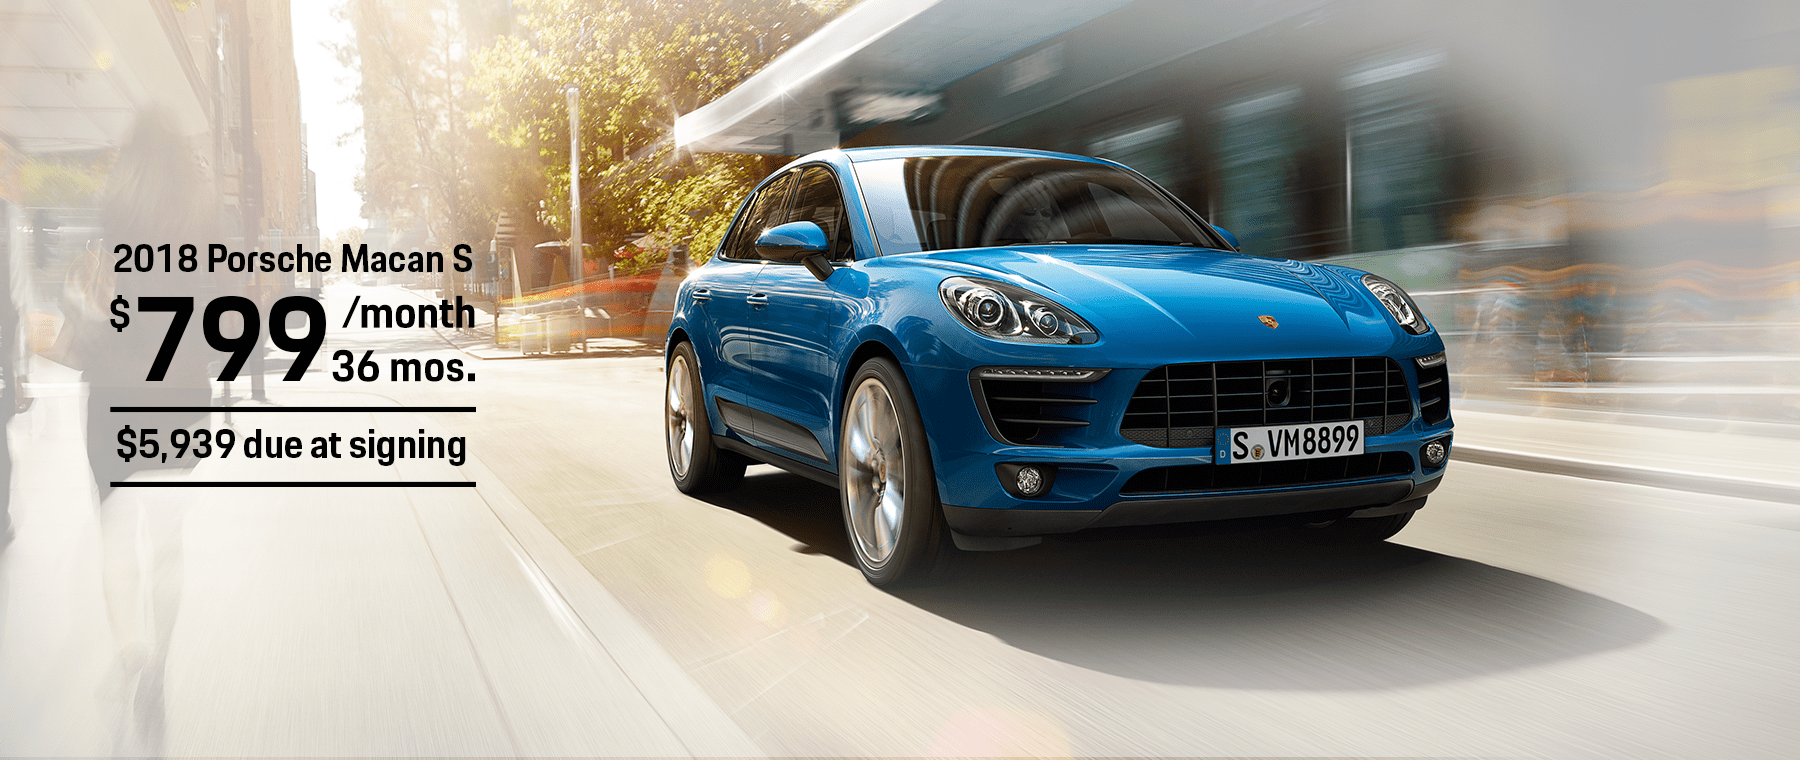 Porsche Macan S Lease Offer